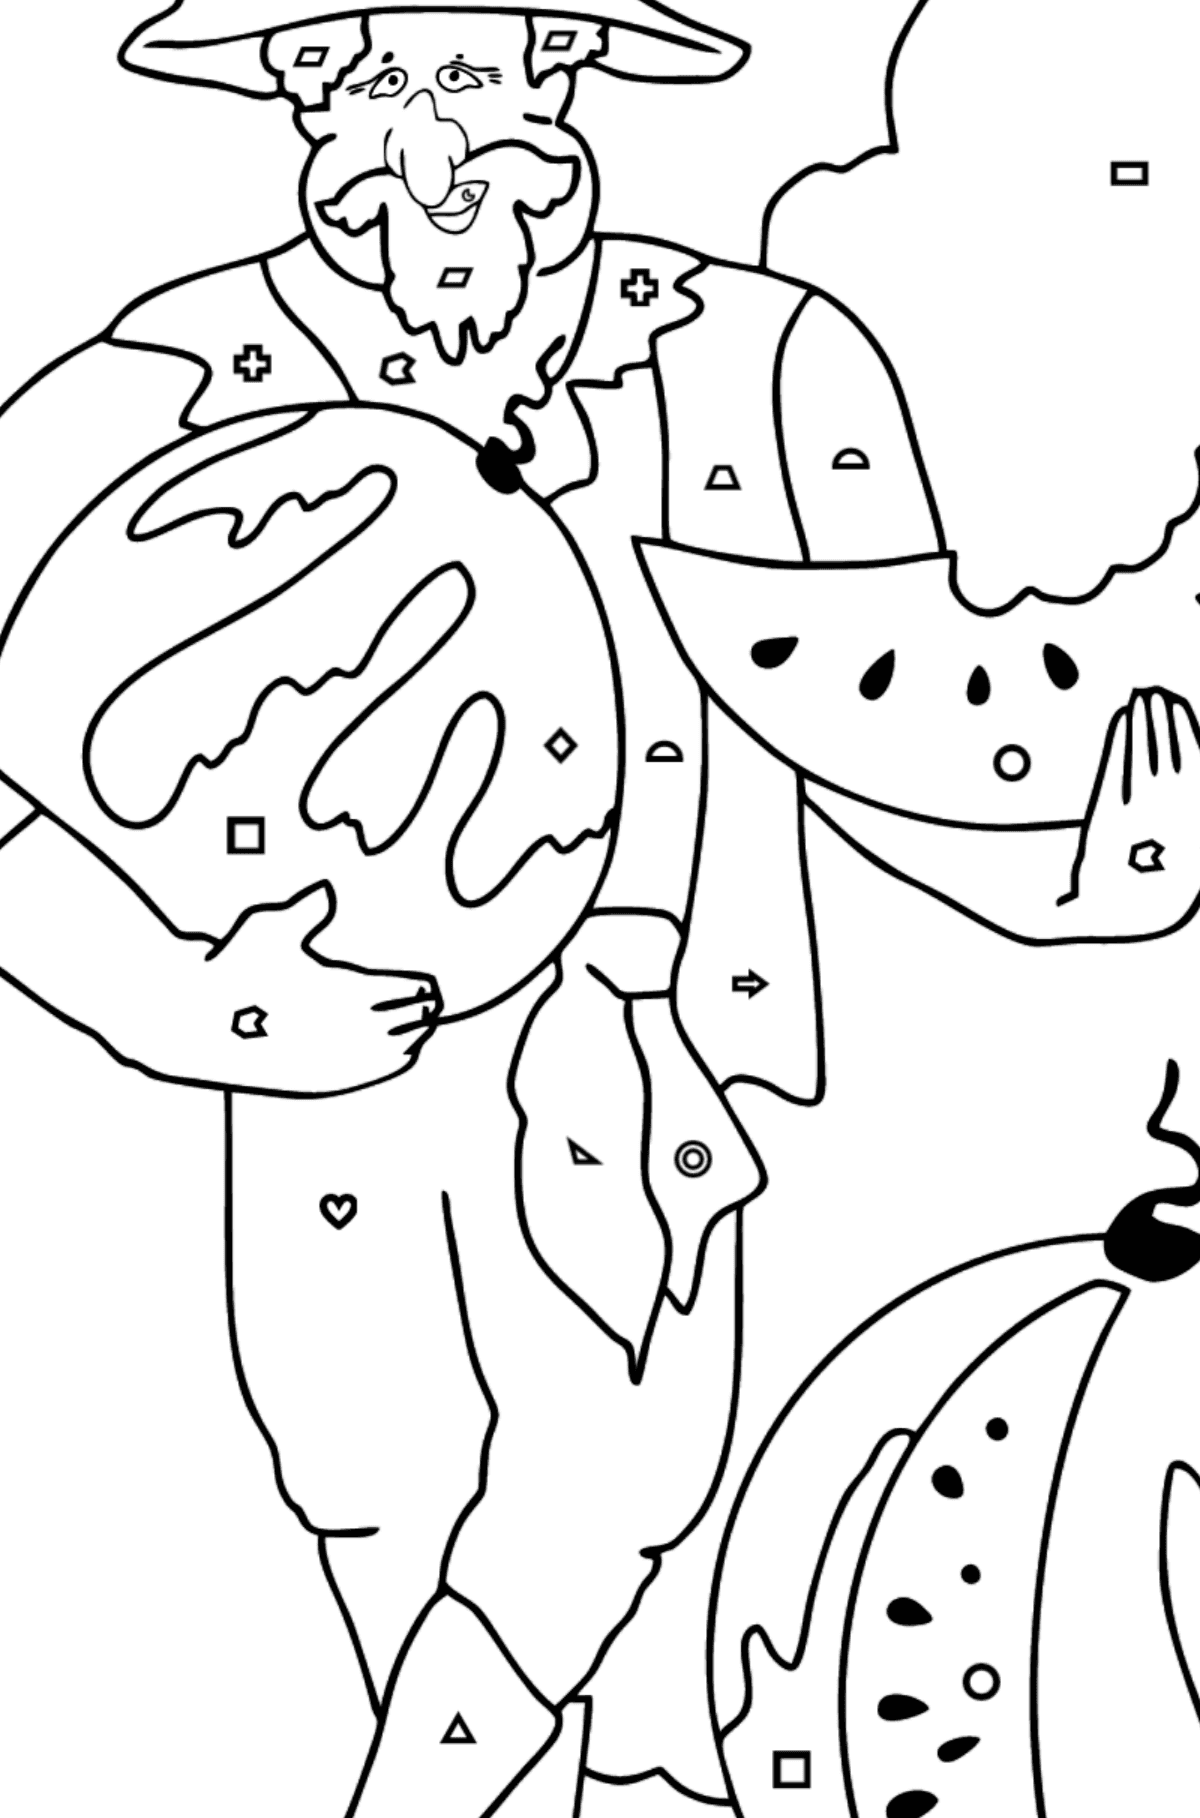 Coloring Page - A Pirate with a Watermelon - Coloring by Geometric Shapes for Kids